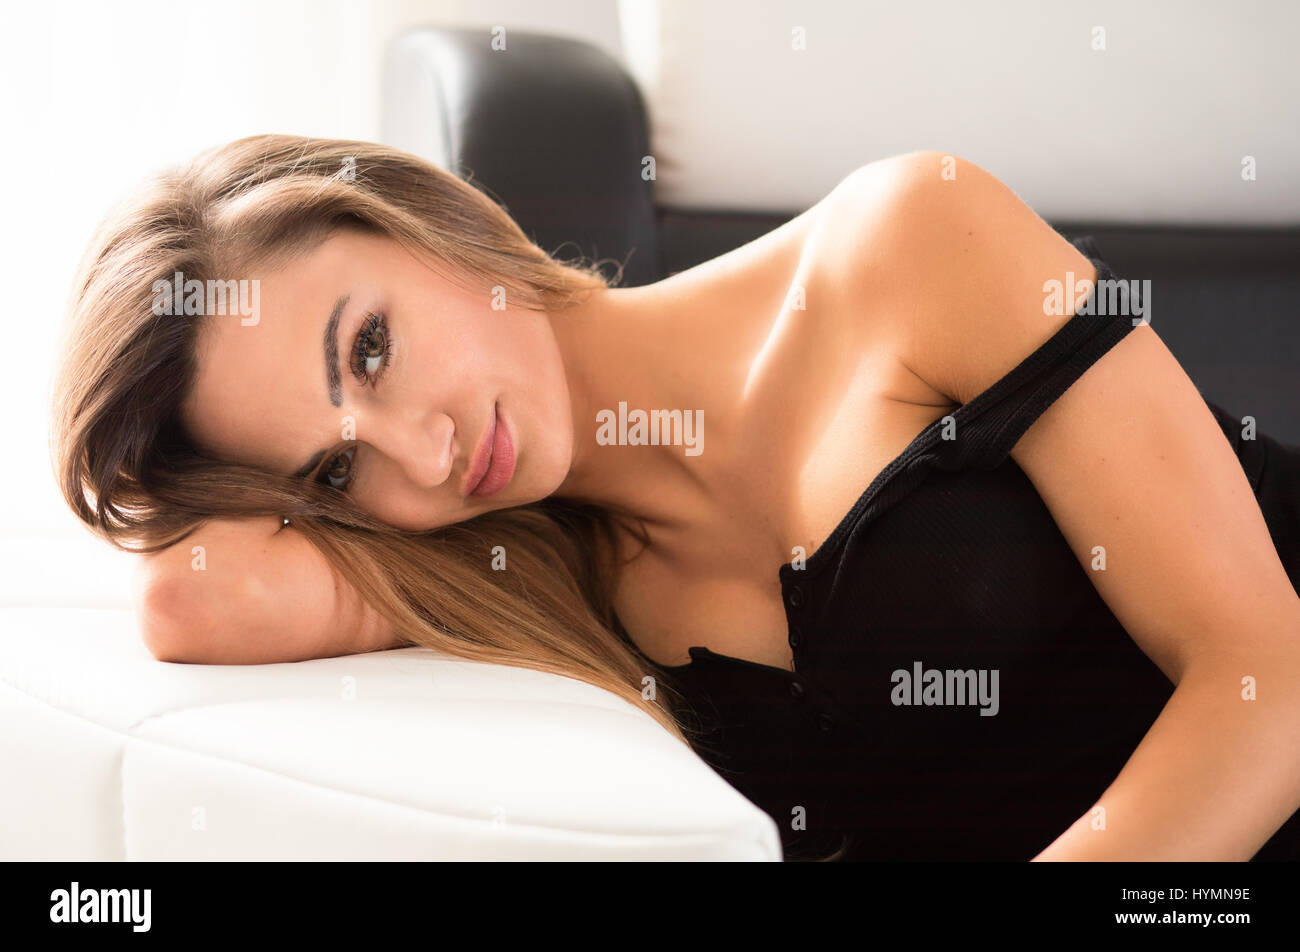 Young, fit and slim, beautiful woman with an expression on her face - joy, desire, reverie, pensiveness, thoughts. - Stock Image